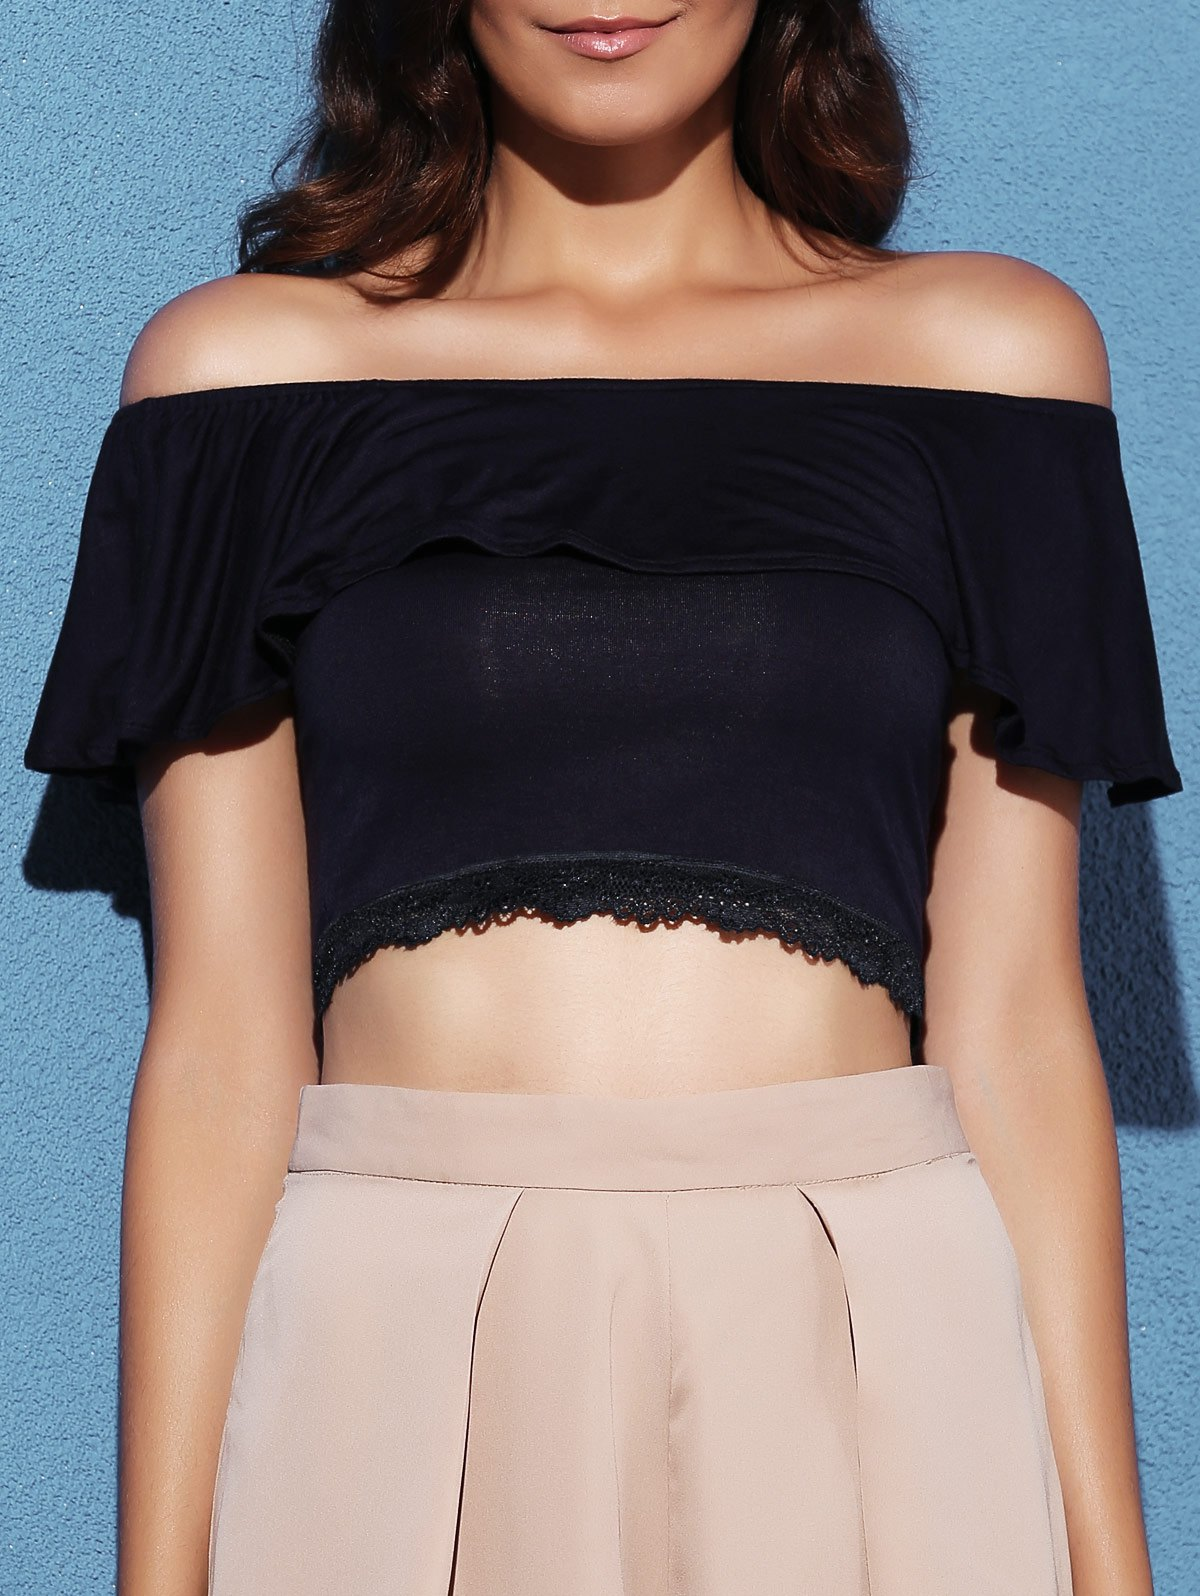 Off The Shoulder Lace Splicing Short Sleeve Crop Top 174406004